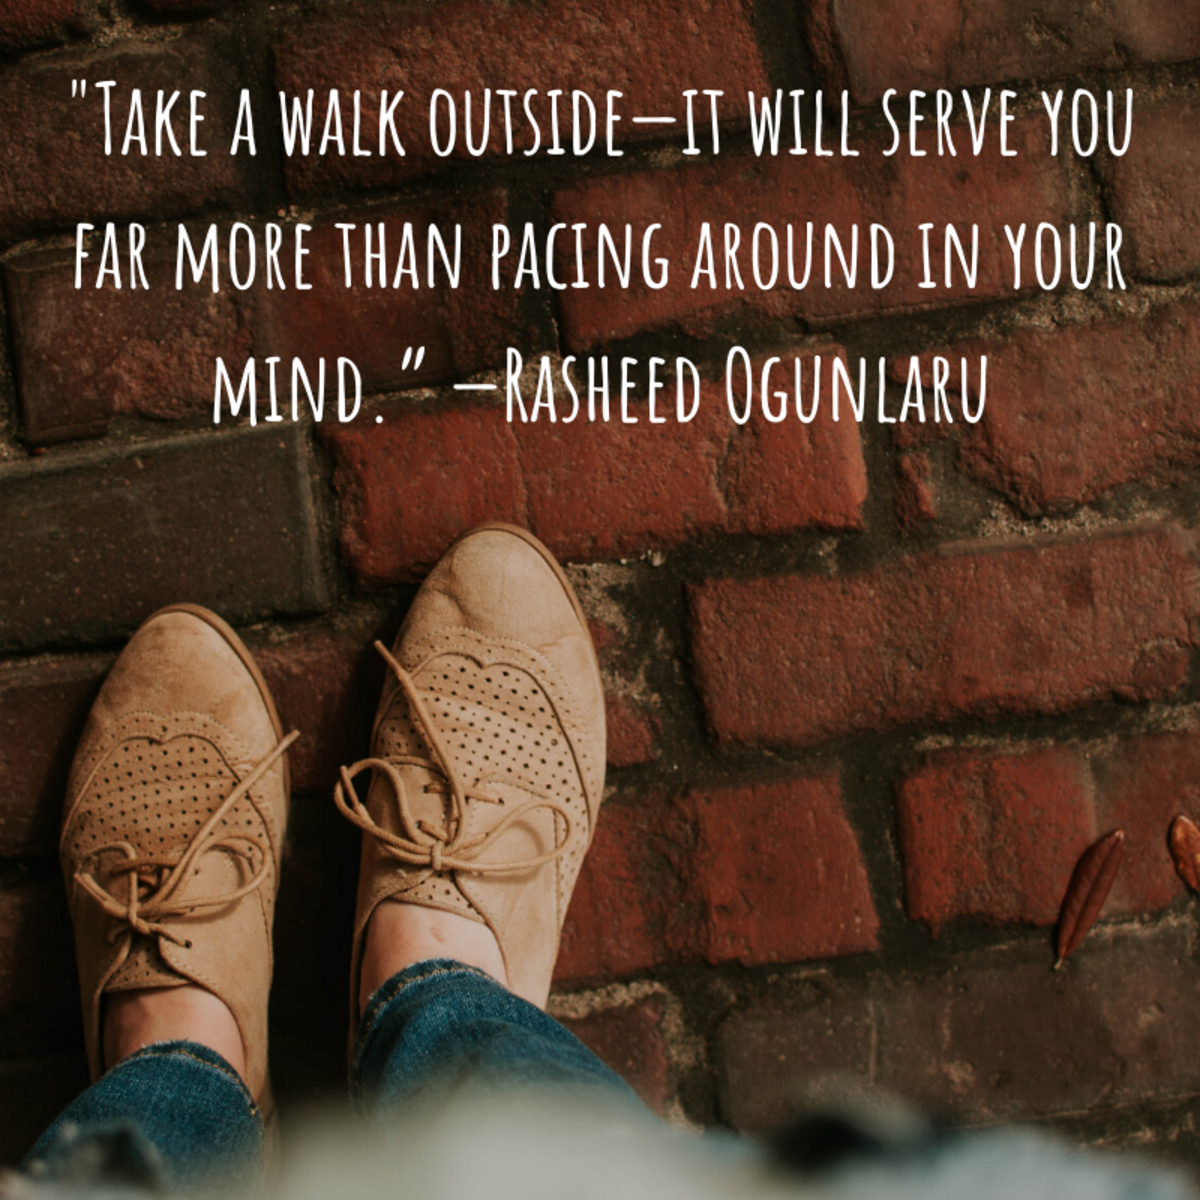 """Take a walk outside—it will serve you far more than pacing around in your mind."" —Rasheed Ogunlaru"